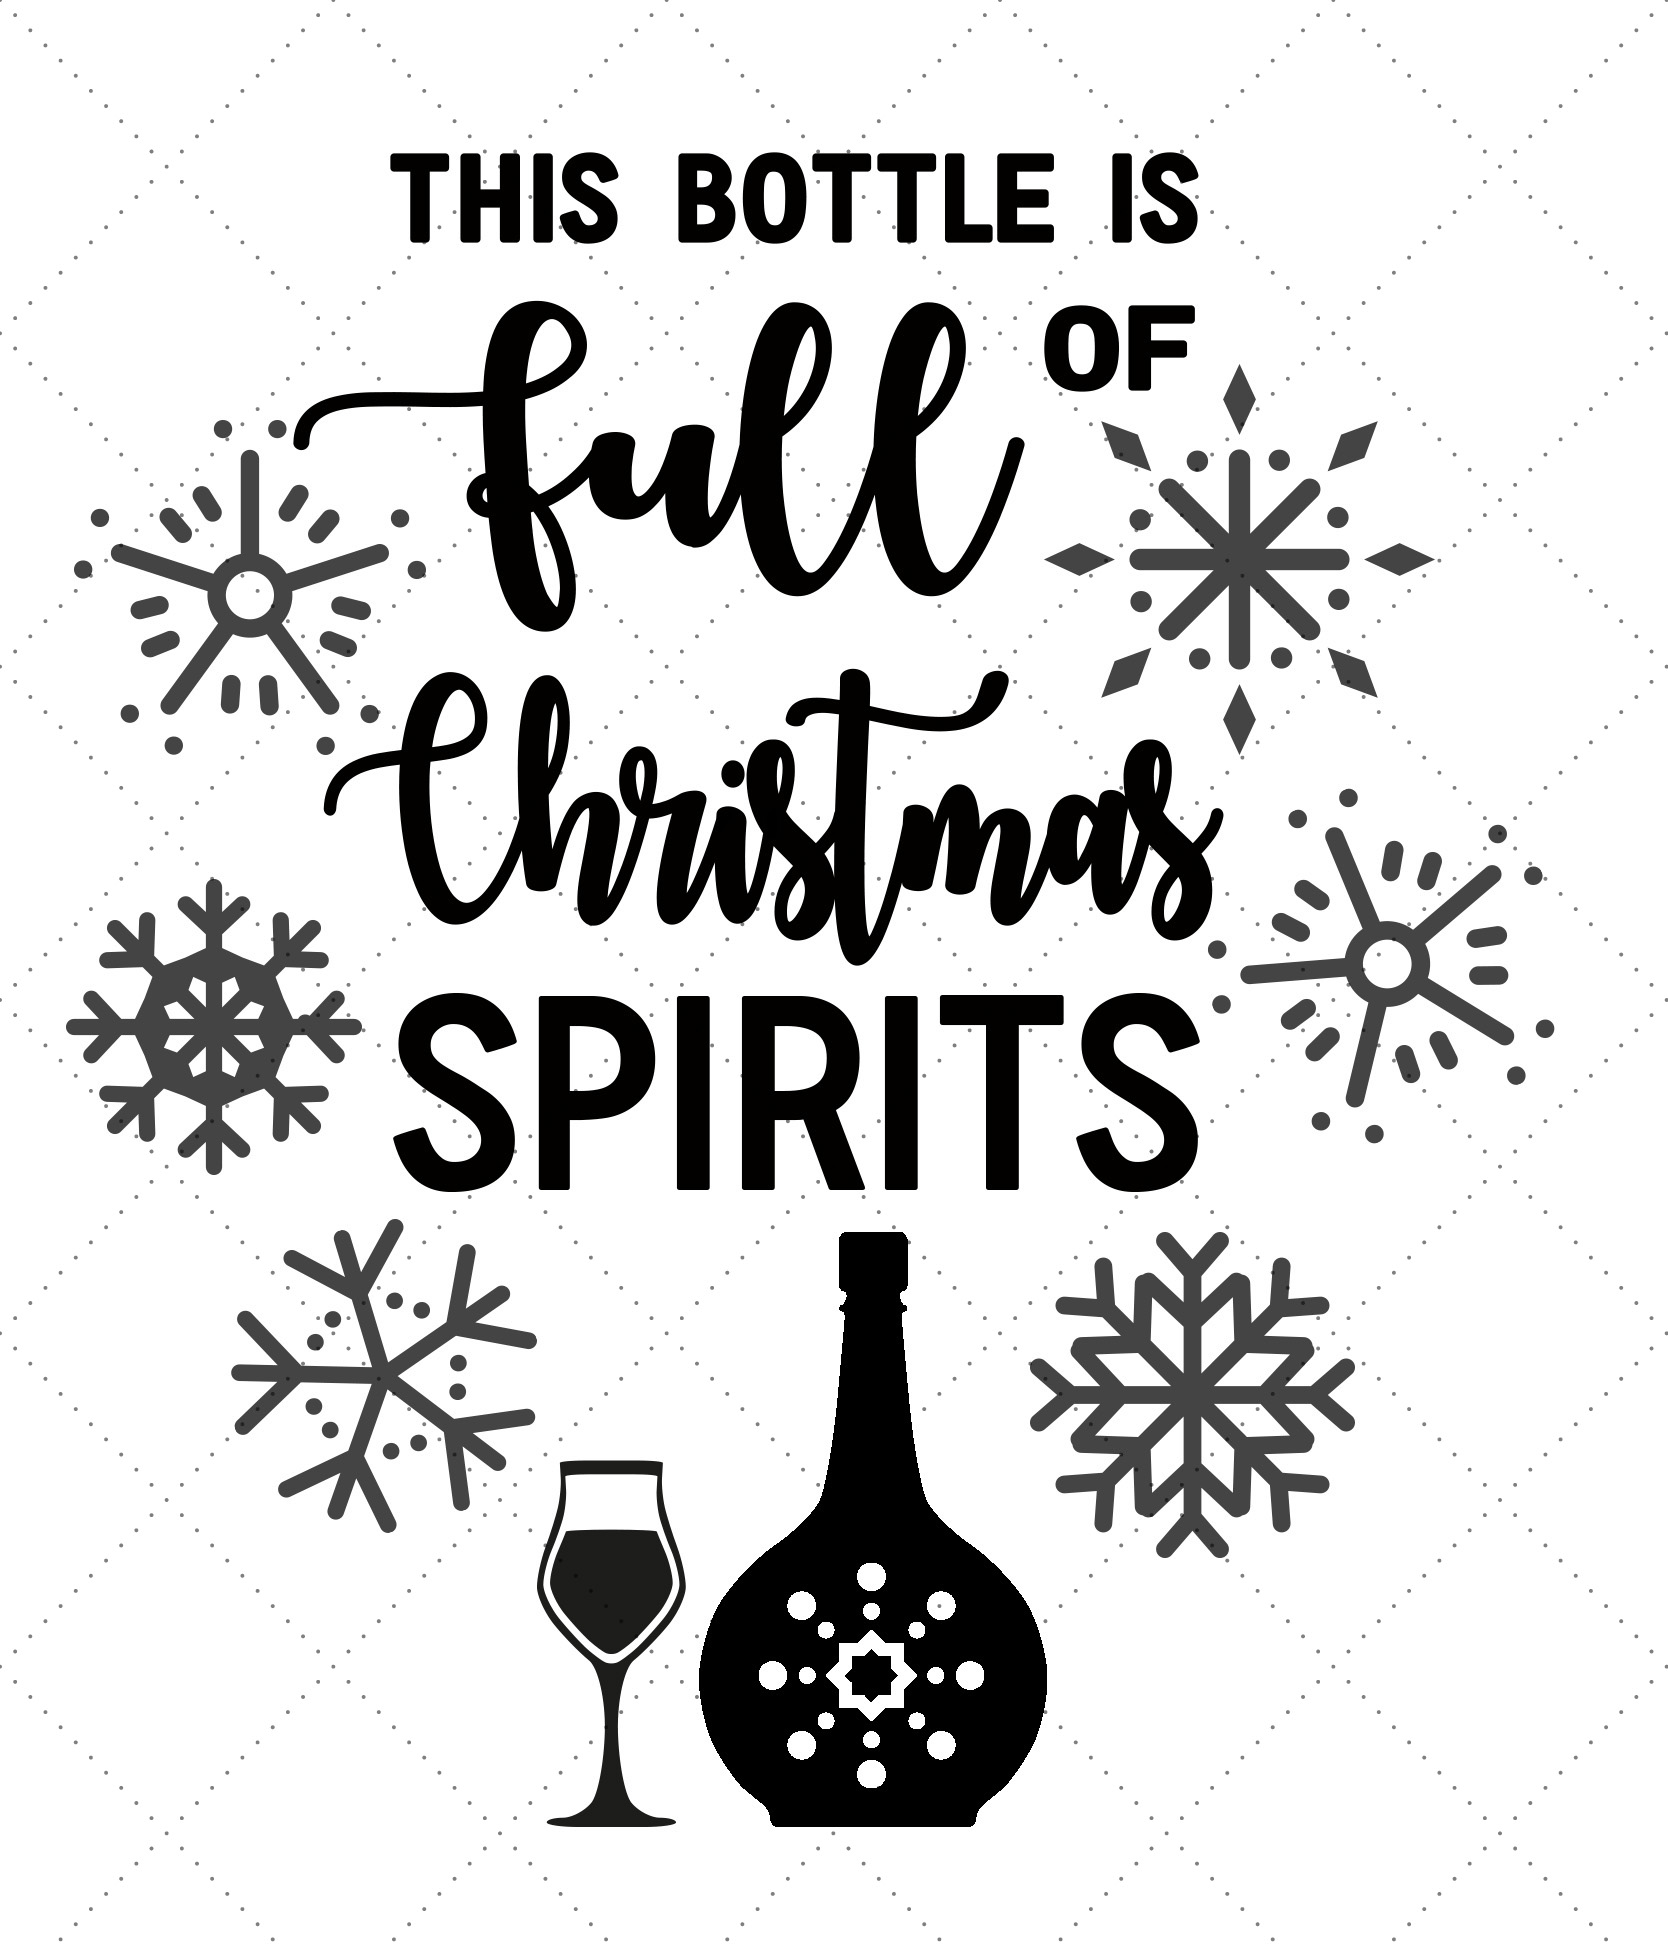 Free Svg File Christmas Spirits Bottle Happiness Is Homemade